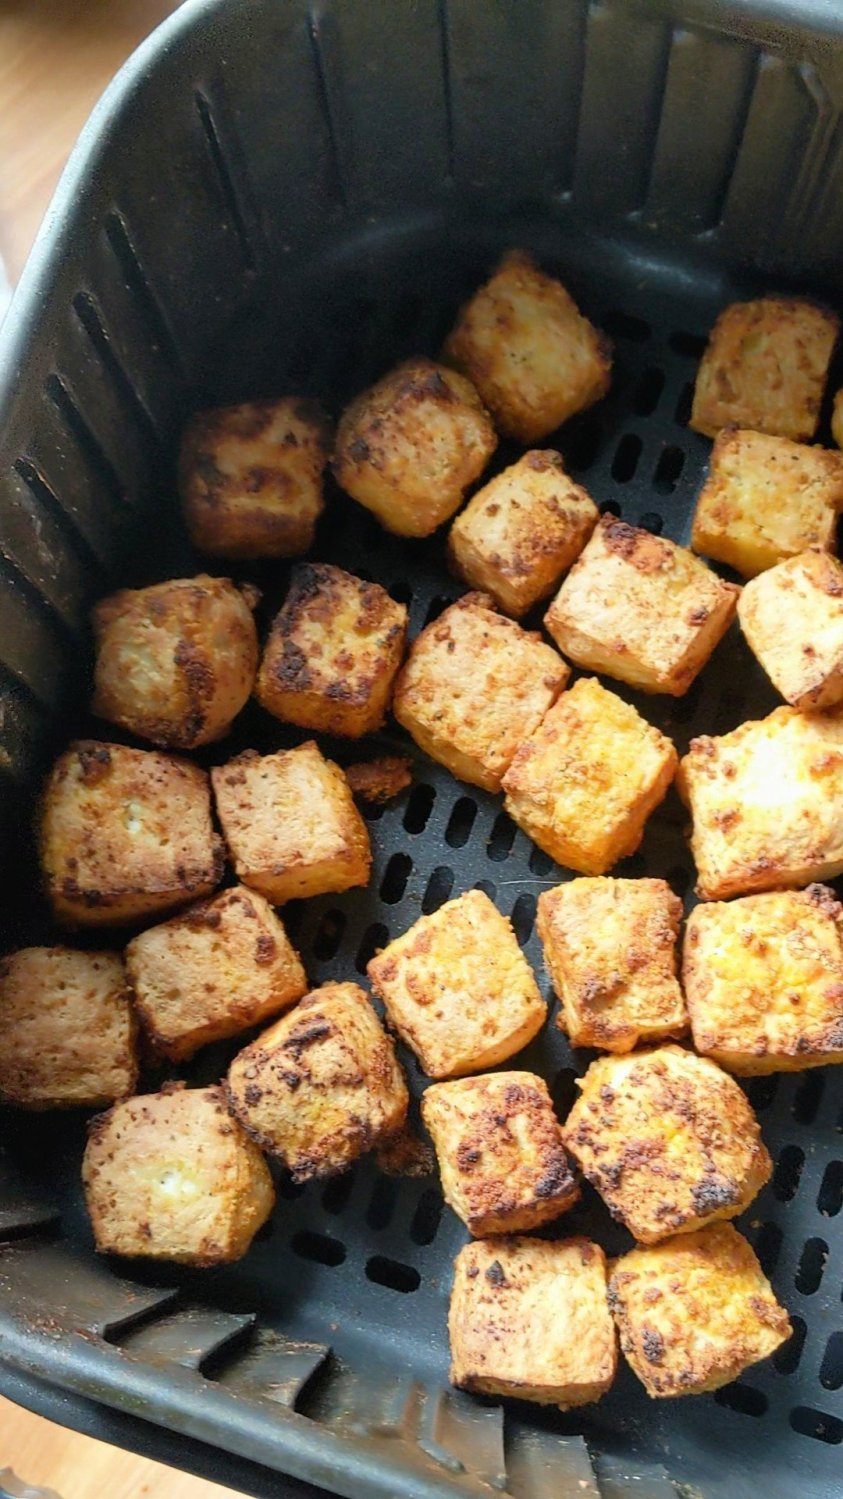 basket air fryer tofu recipe vegan chicken nuggets in the air fryer healthy plant based protein for kids tofu nuggets air fried low calorie high protein snack